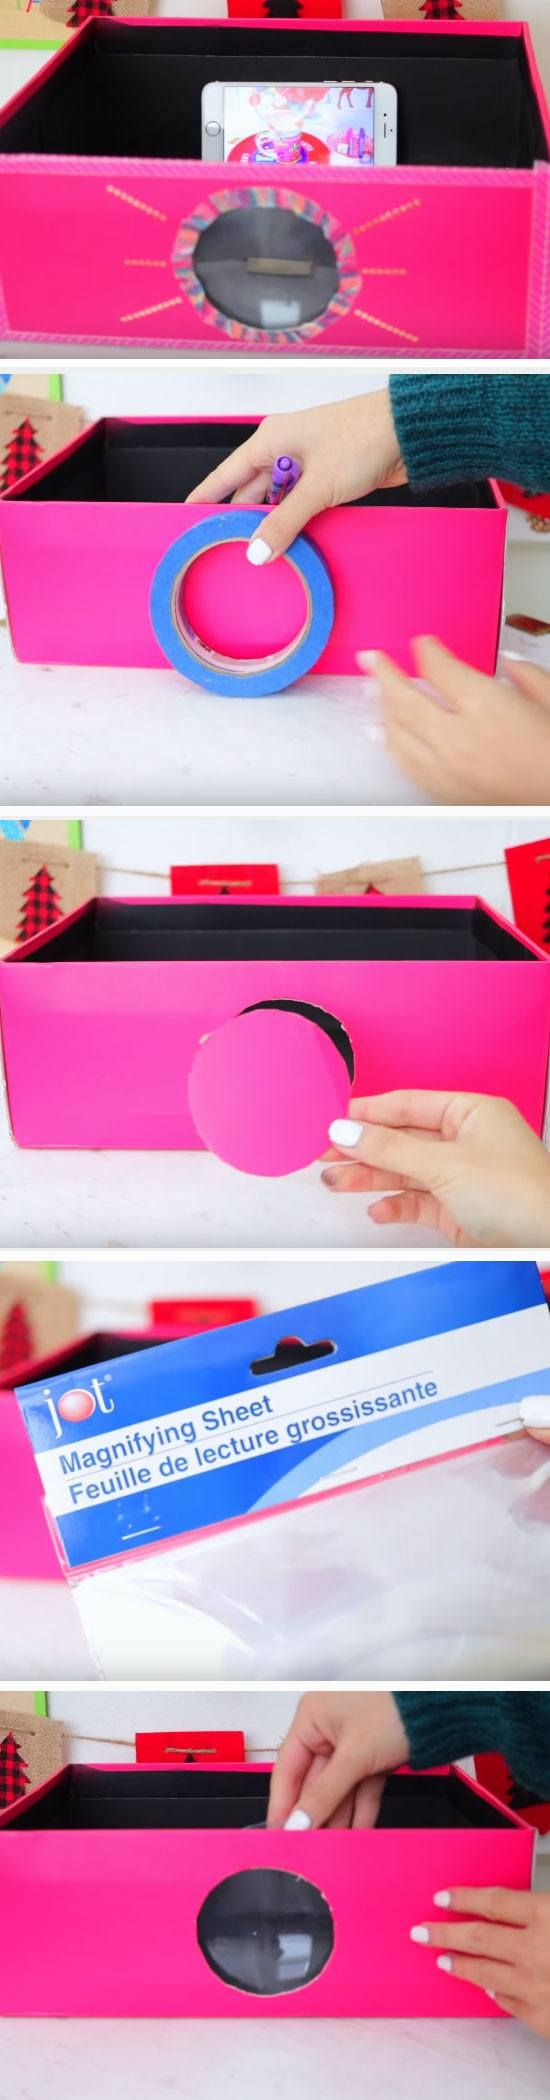 Smartphone Projector   19 DIY Movie Night Ideas for Teens that will get the party started! More